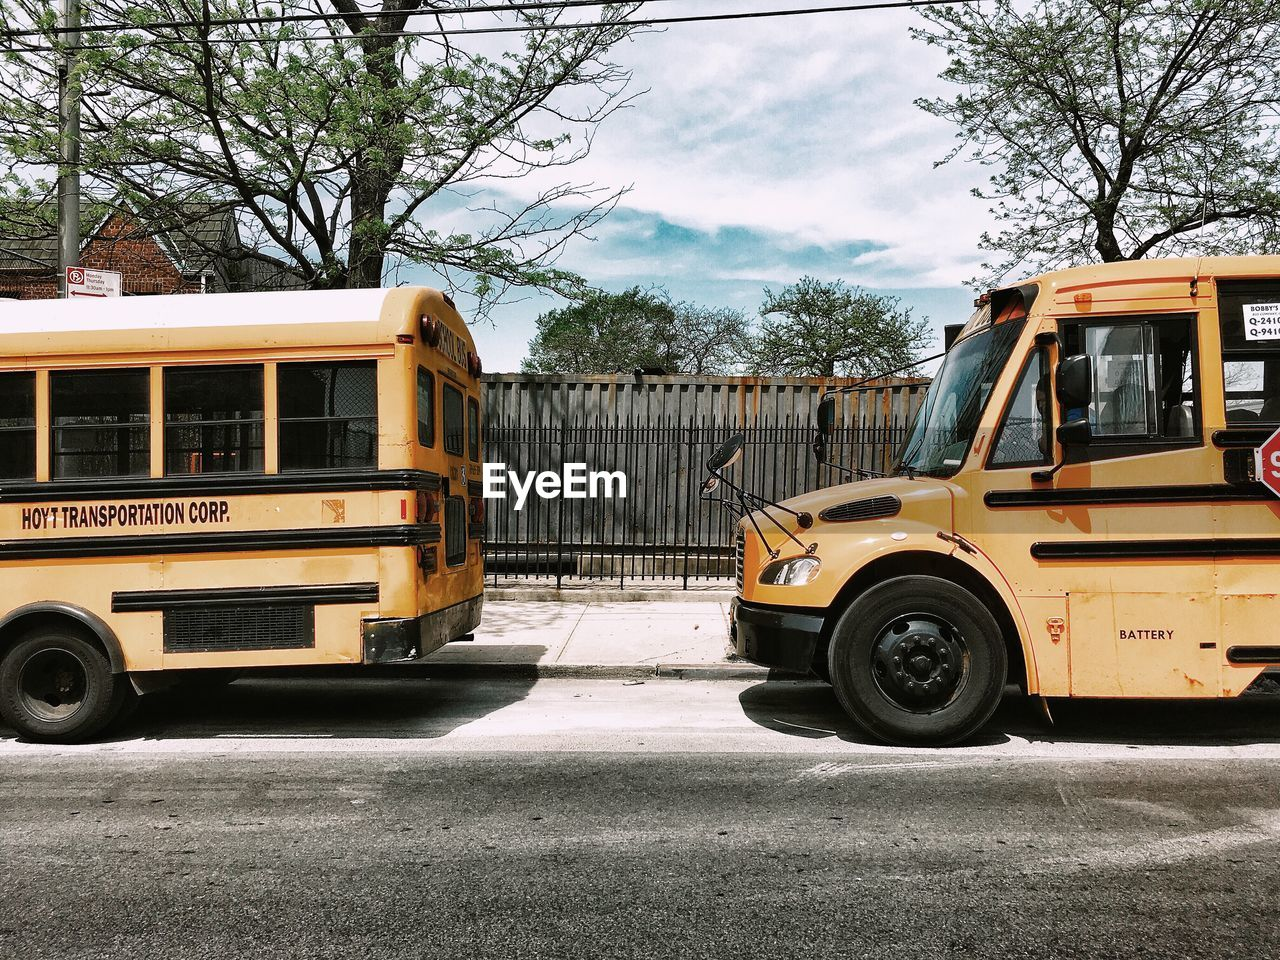 mode of transportation, transportation, land vehicle, day, tree, motor vehicle, yellow, street, bus, plant, public transportation, stationary, city, road, outdoors, architecture, parking, nature, car, school bus, no people